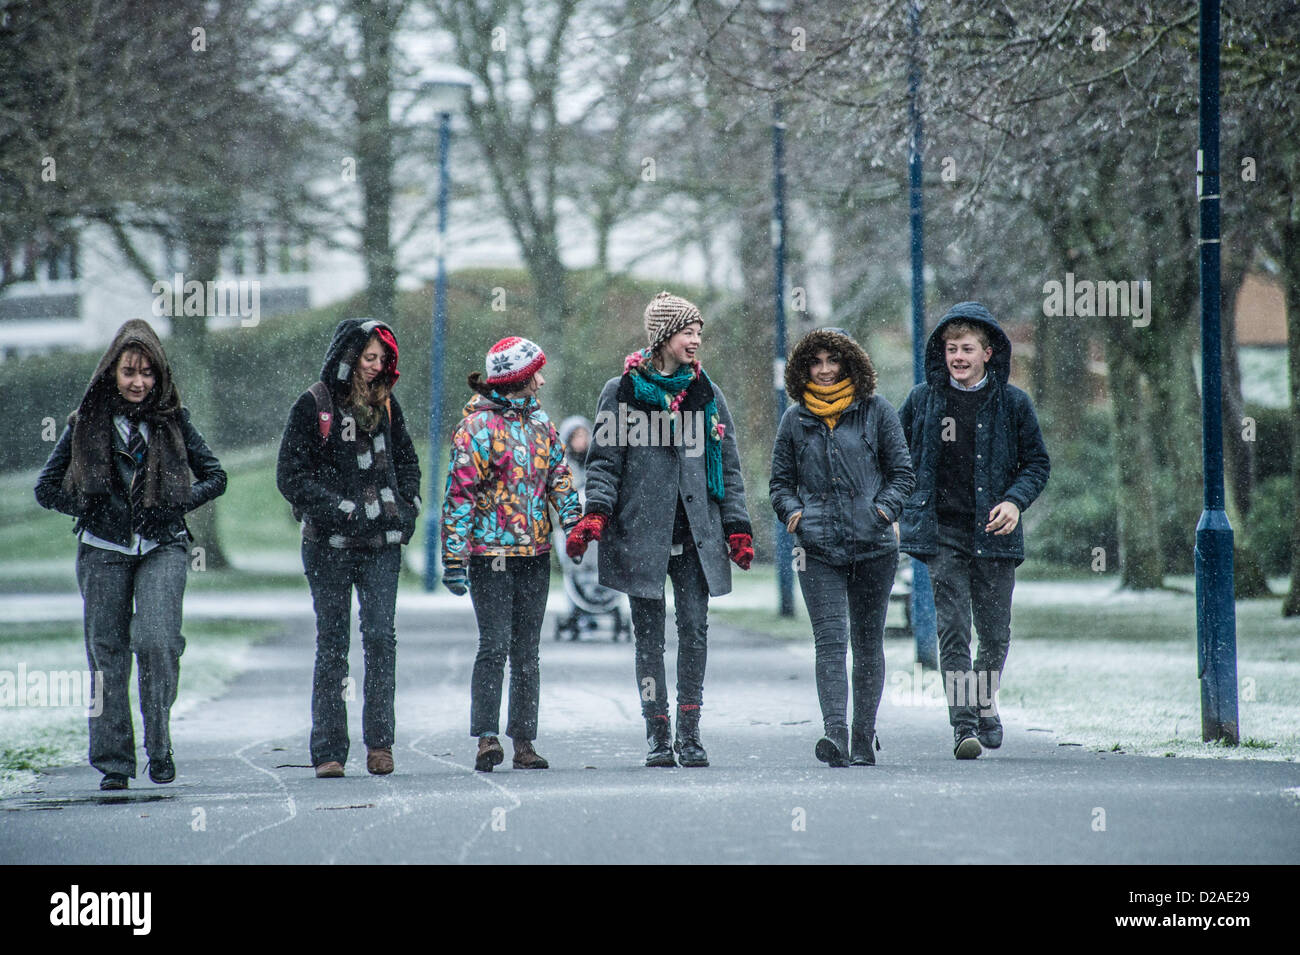 Aberystwyth, Wales, UK. 18th January 2013.  A group of 6th form pupils at Penweddig School walking to school as - Stock Image